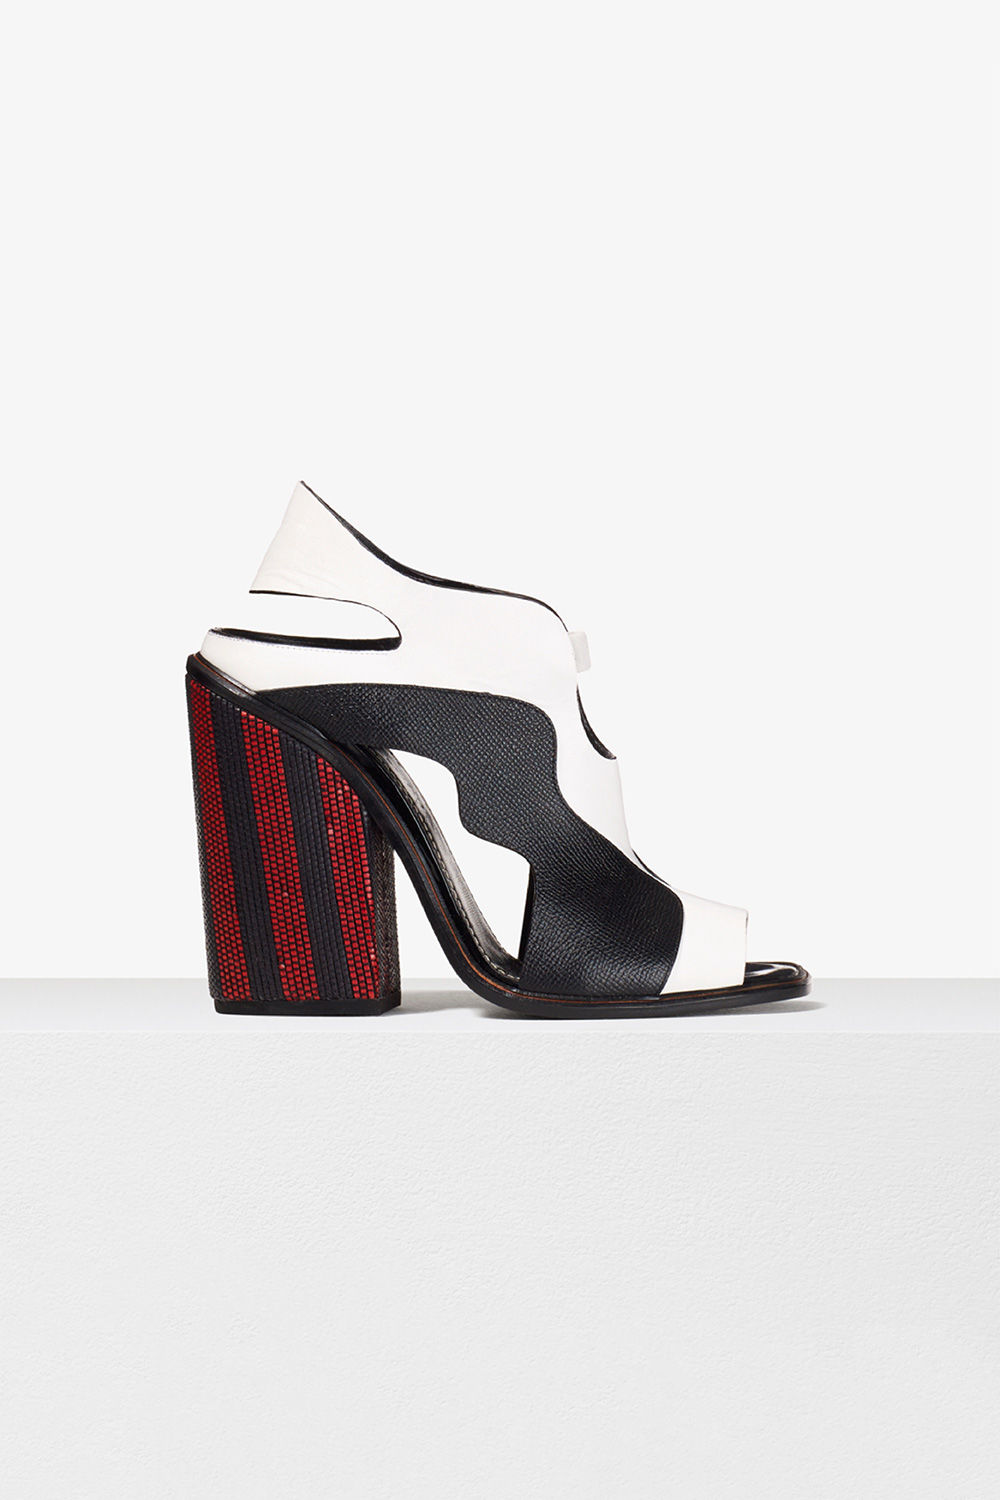 proenza schouler spring 2017 white black red woven stripe heeled sandal